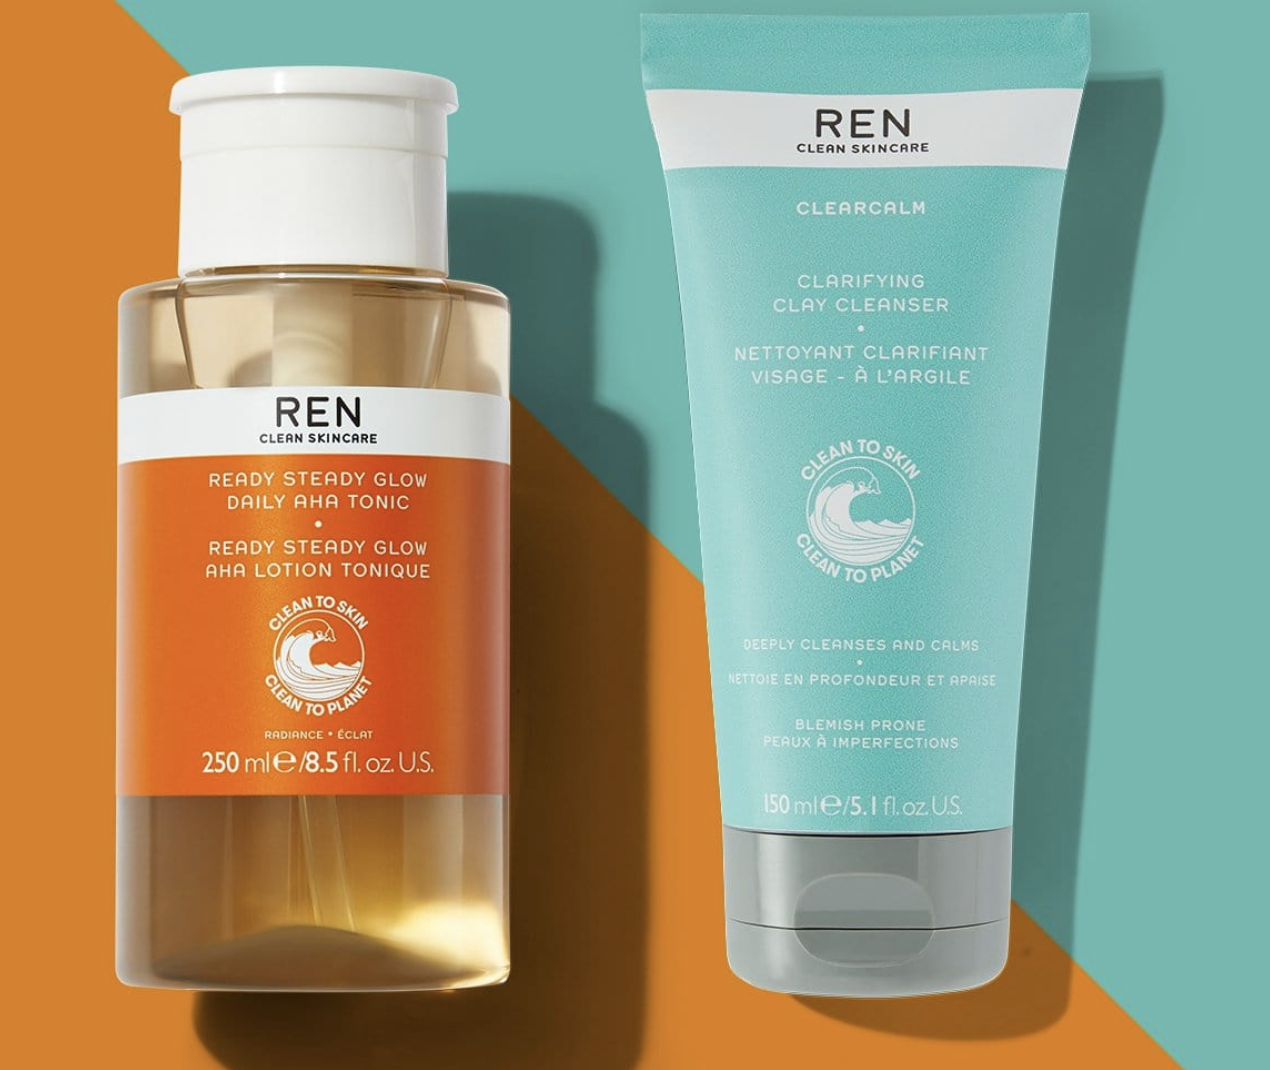 a bottle of tonic and a clarifying clay cleanser